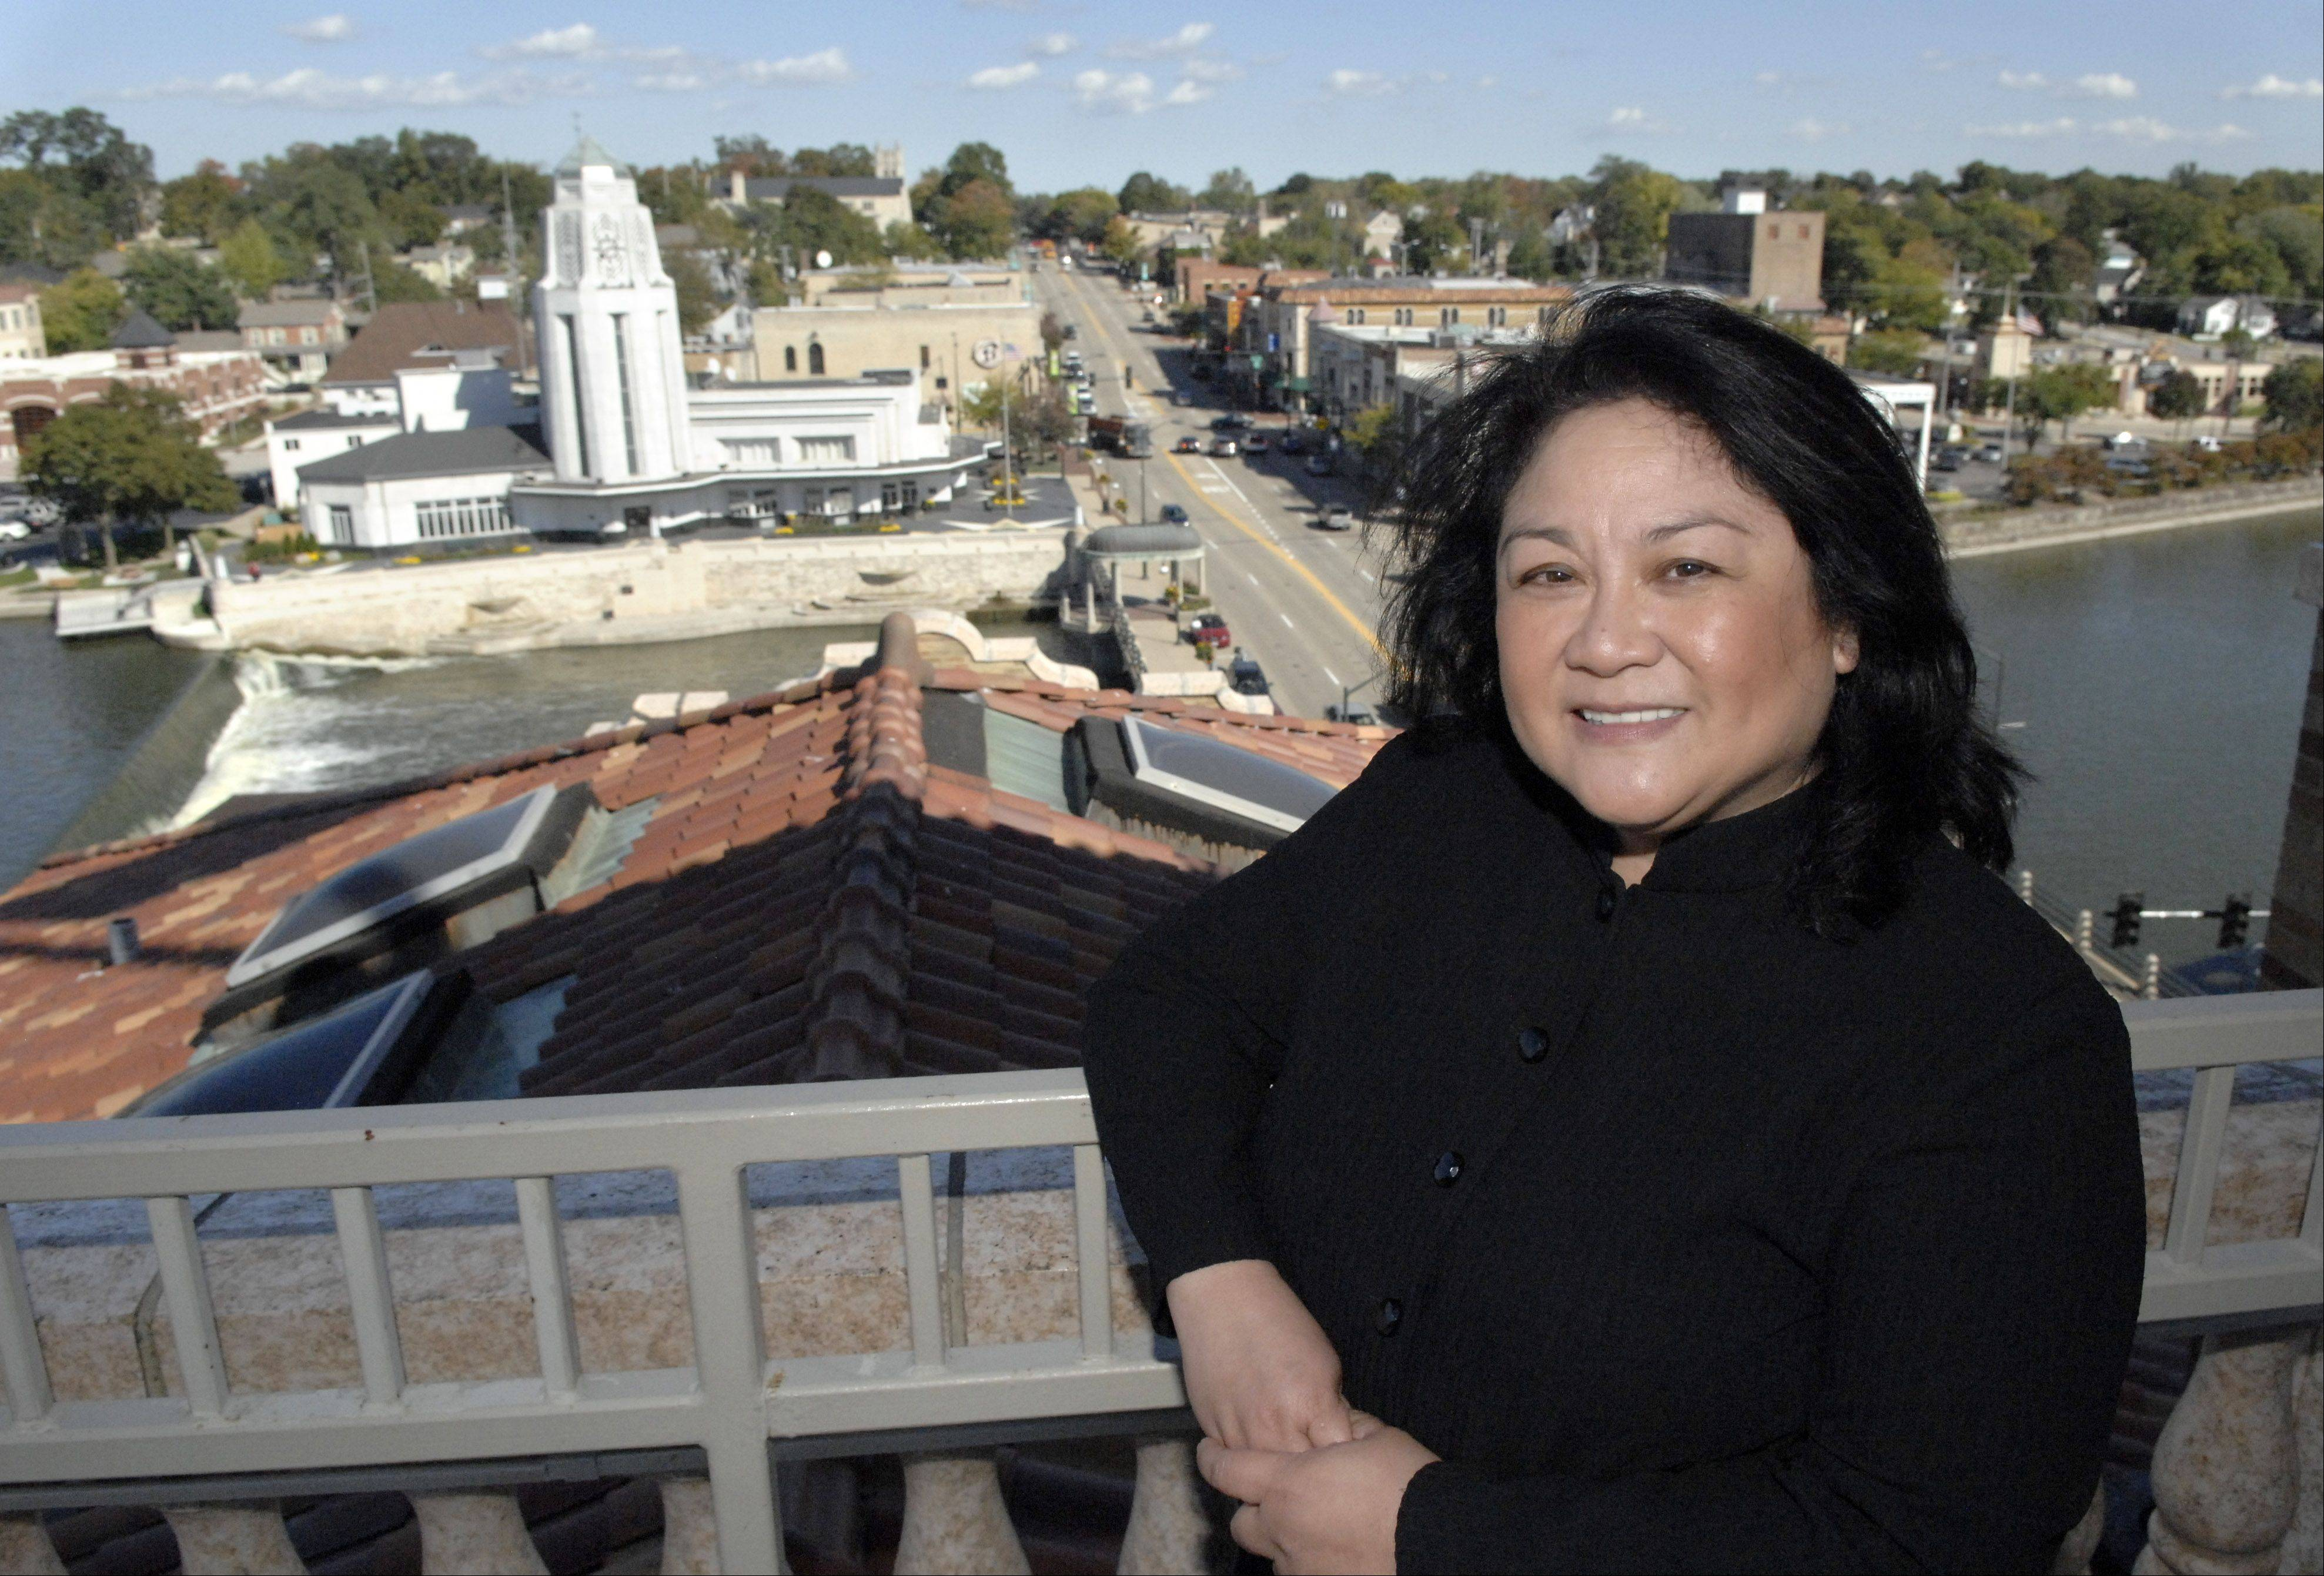 Rowena Salas, co-owner of the Hotel Baker in St. Charles, is shown in 2010 on the Penthouse deck.